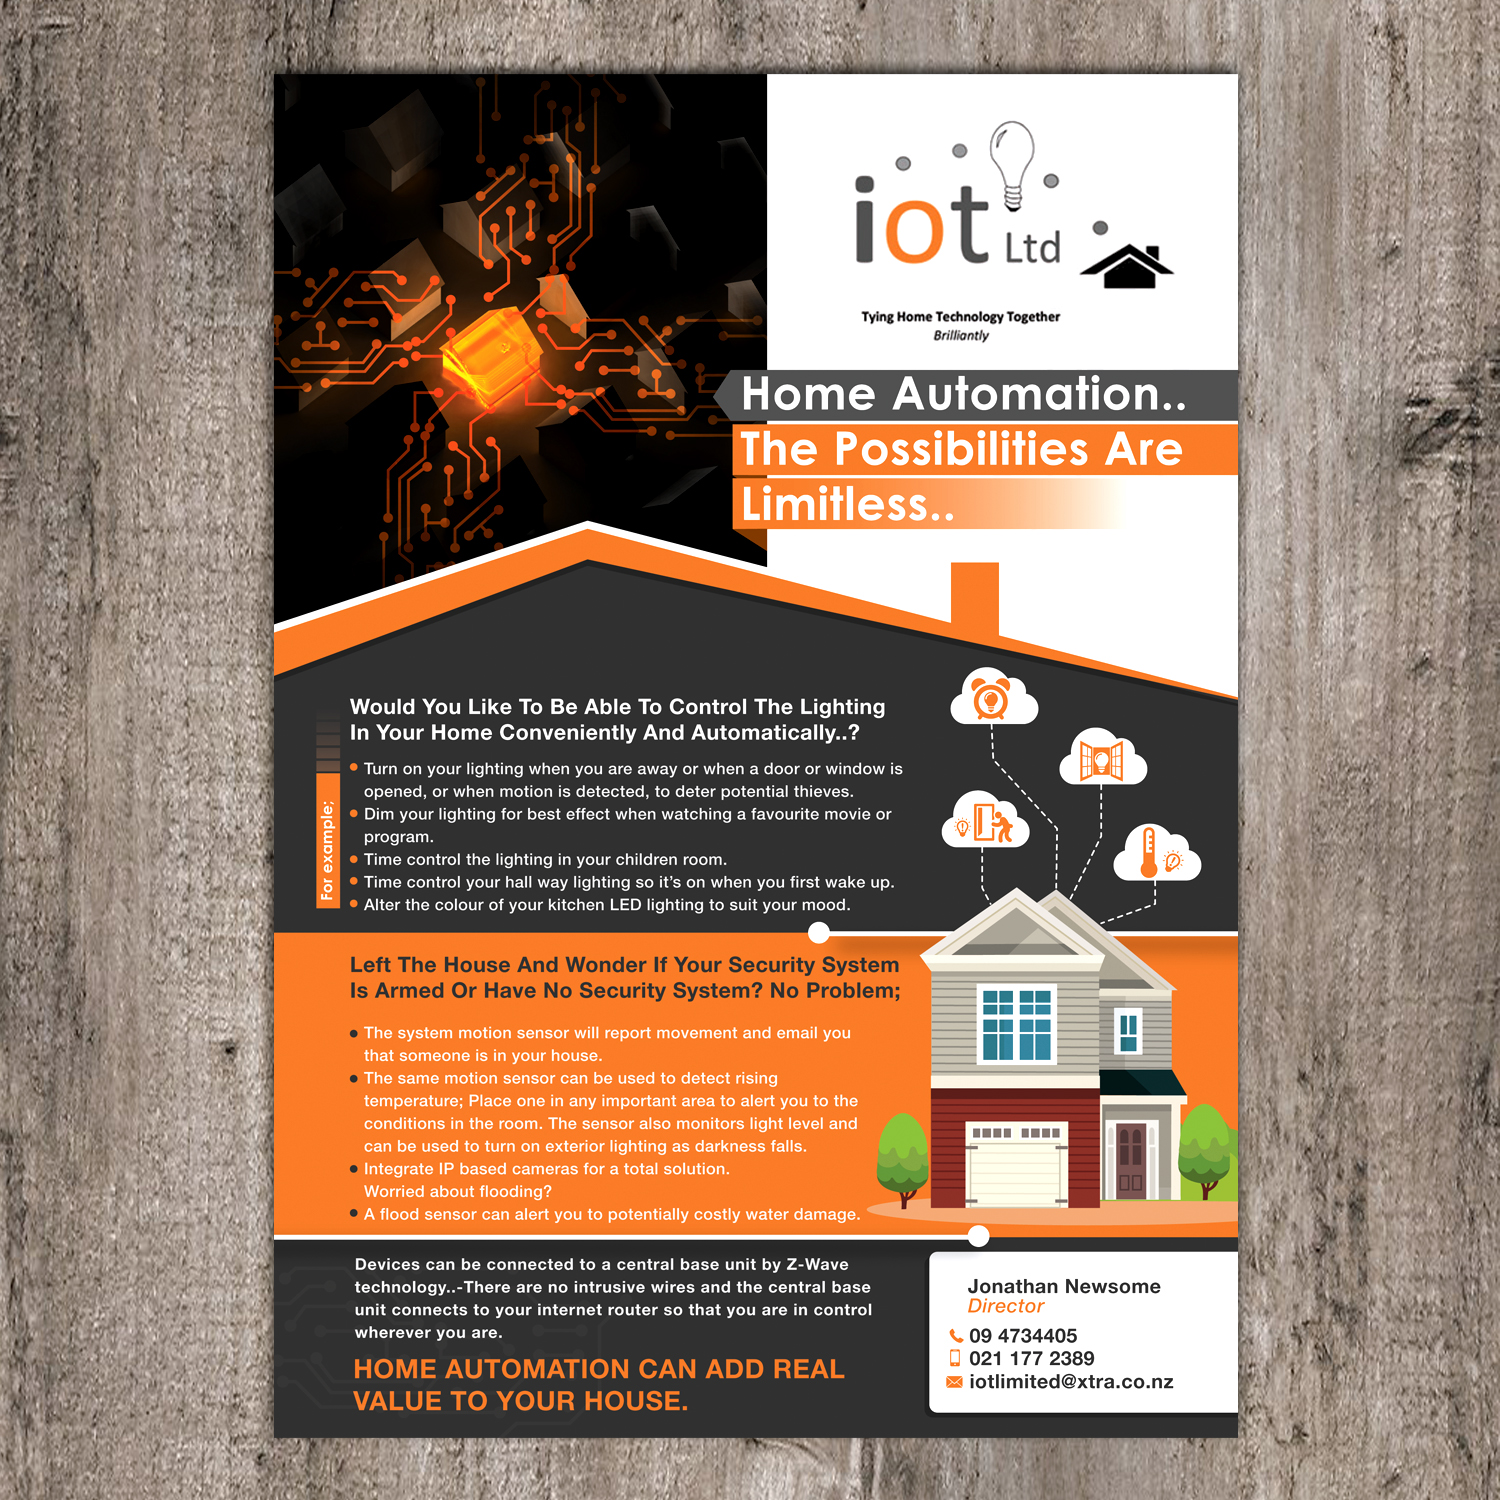 flyer design by kreative fingers kreative fingers - Home Improvement Design